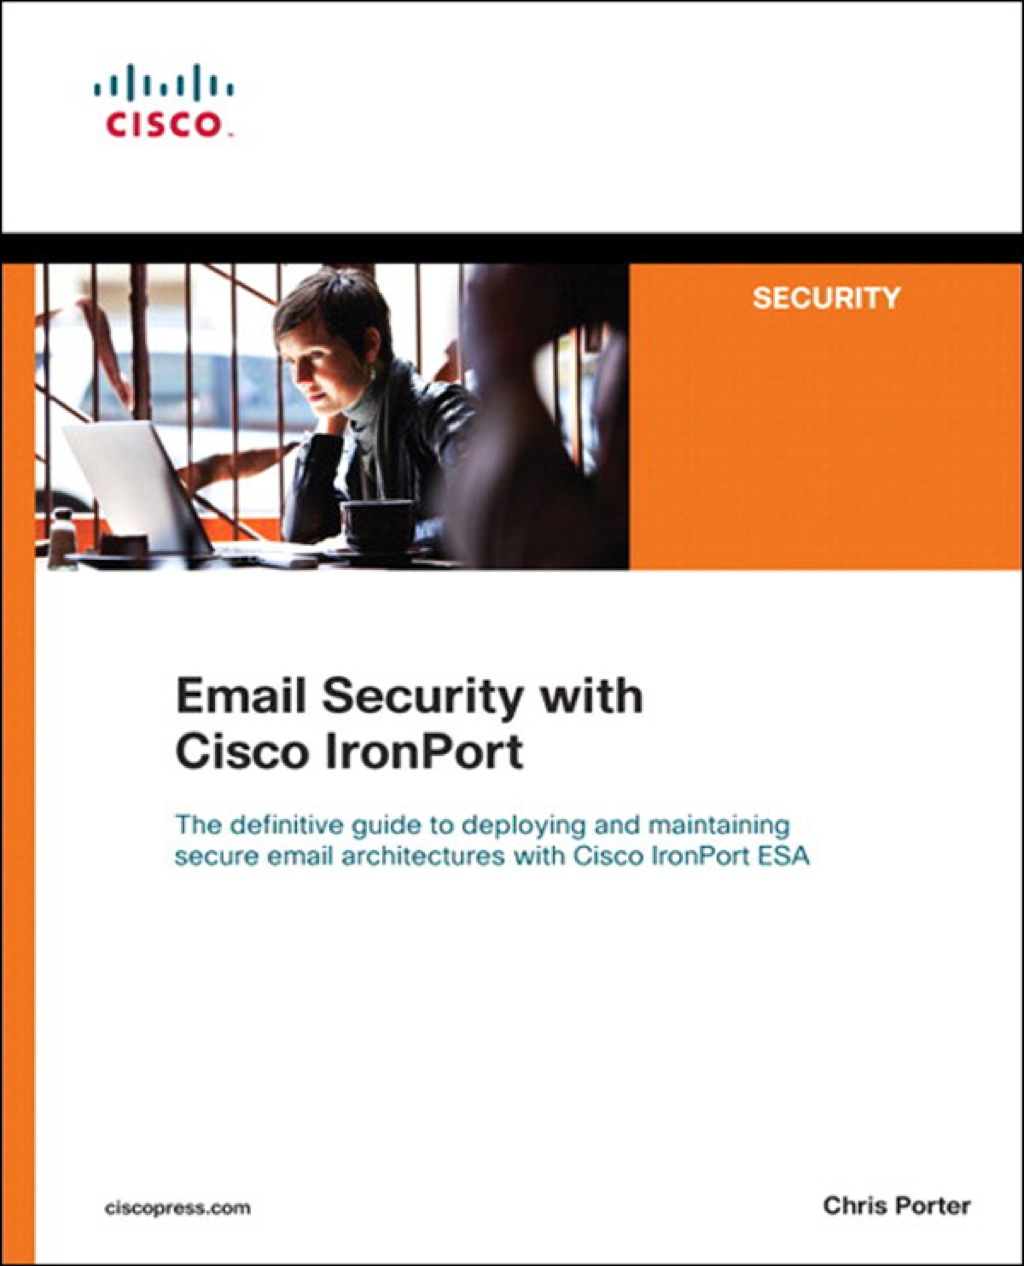 Email Security With Cisco Ironport (ebook)